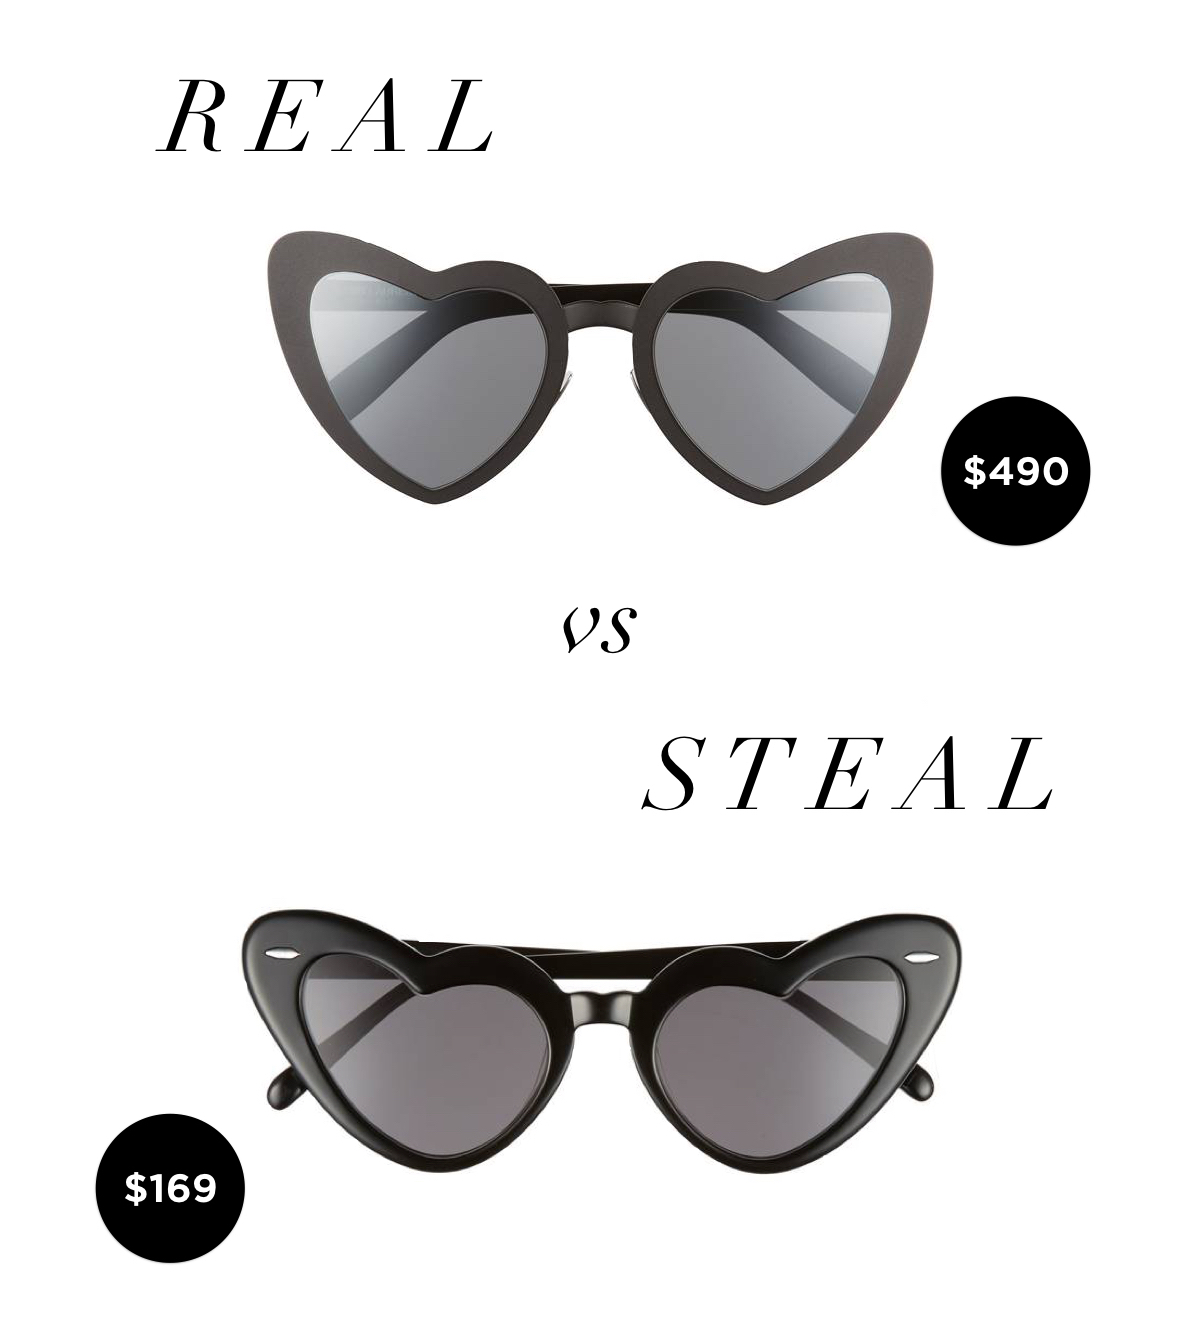 realsteal_heart_sunglasses.001